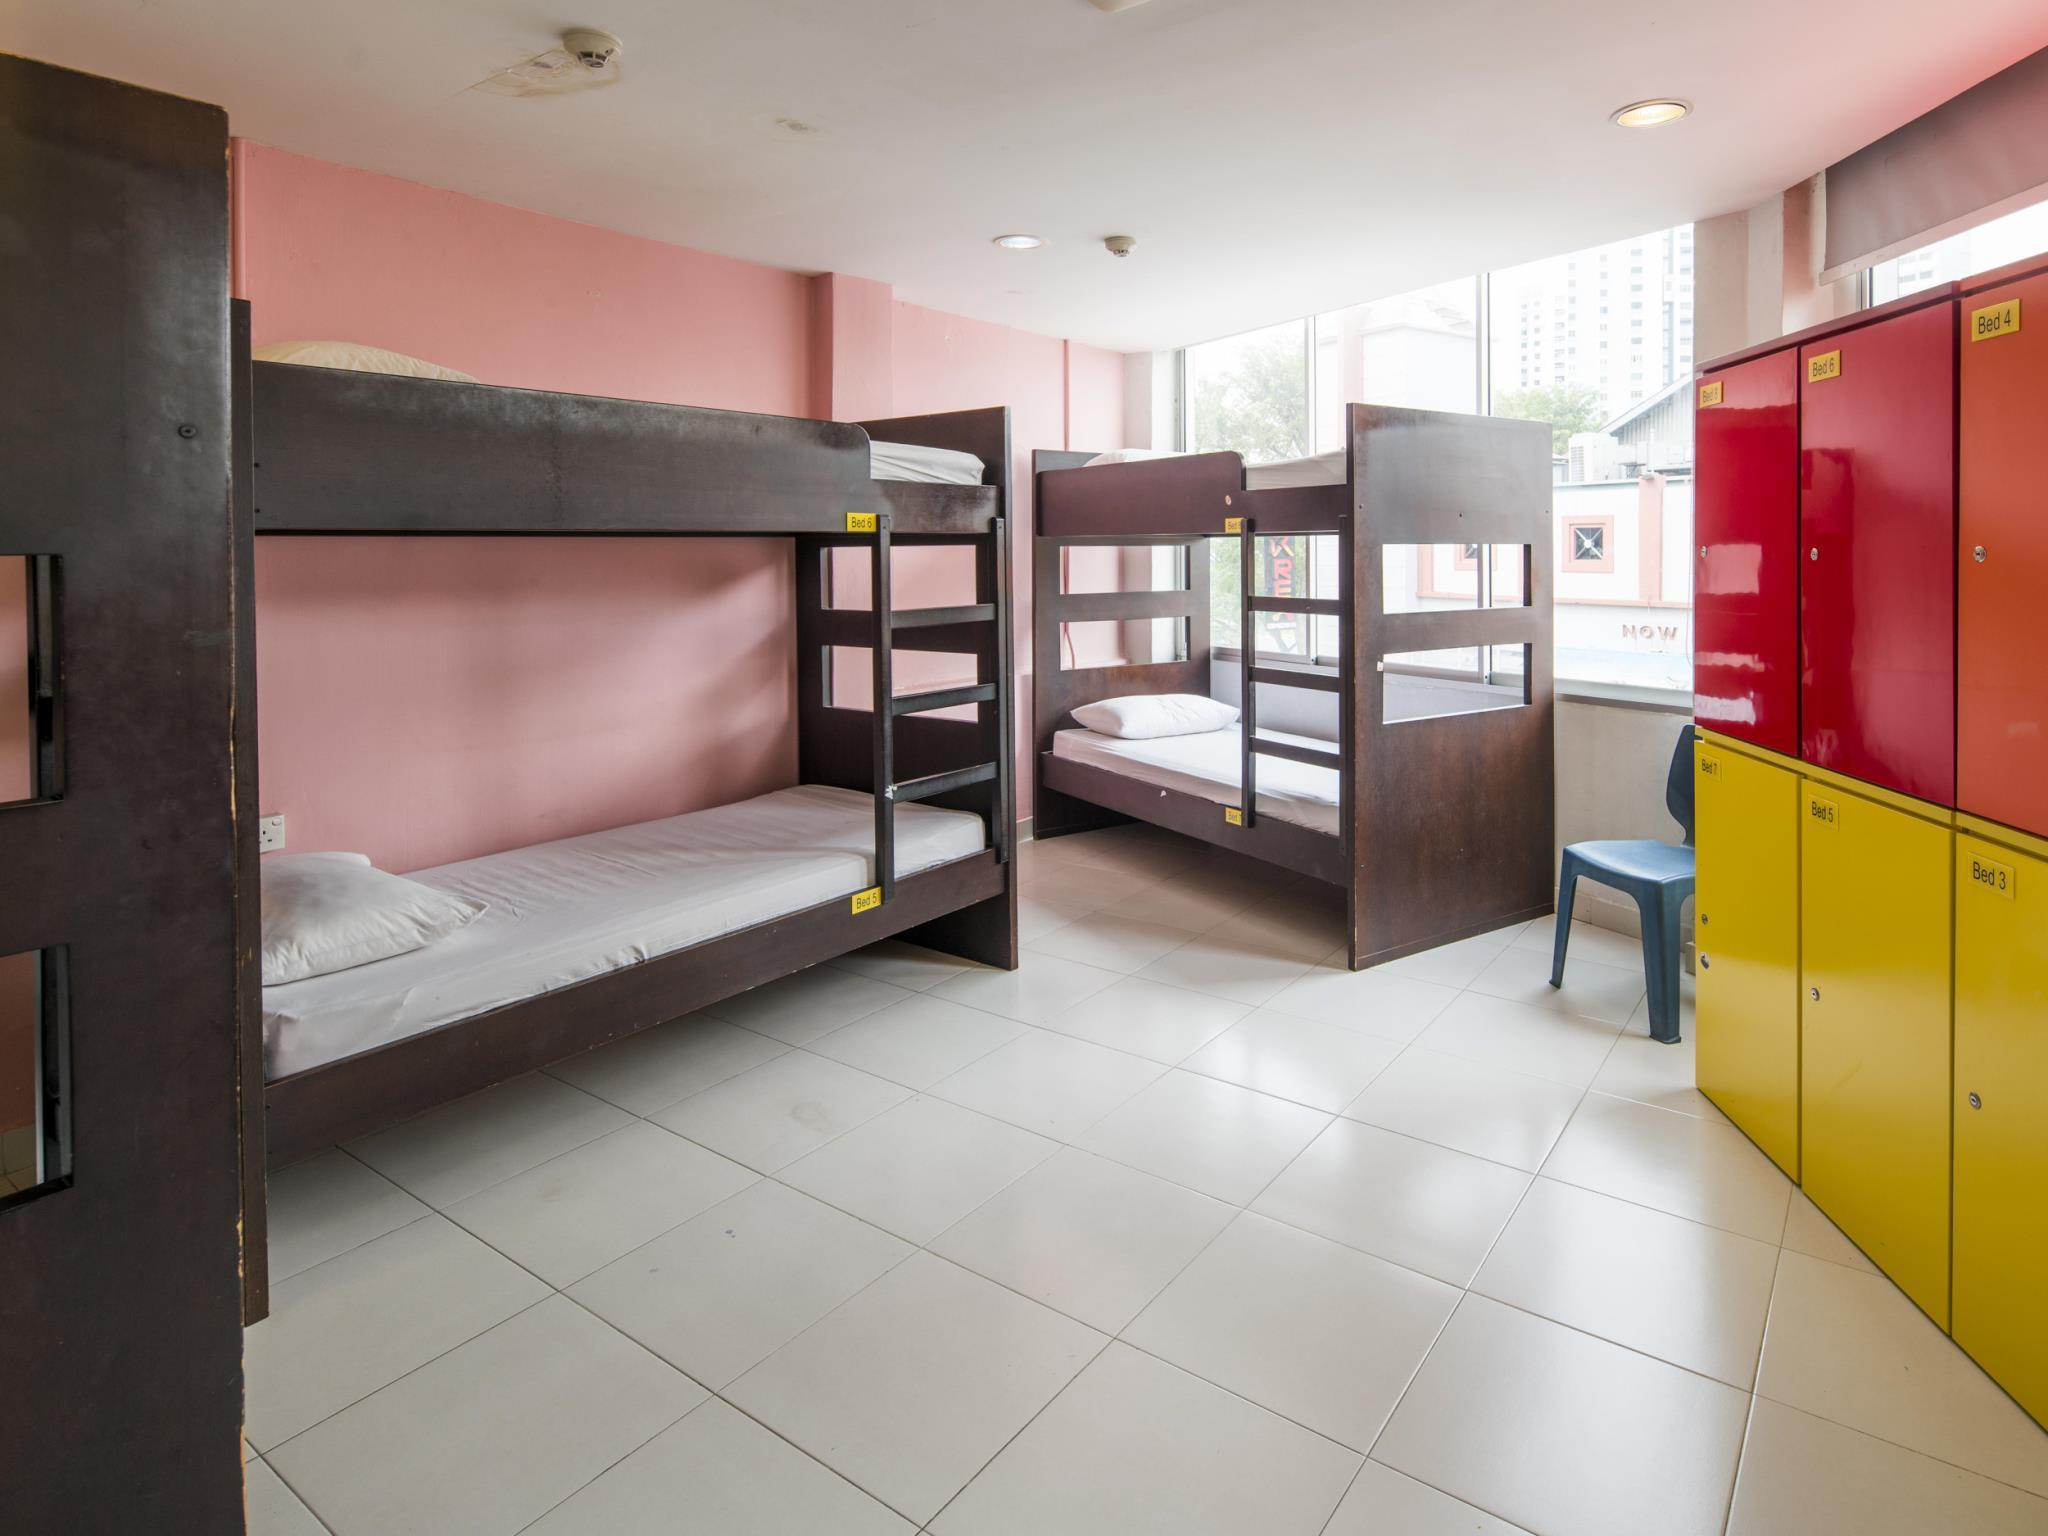 2 People in 8-Bed Dormitory - Mixed